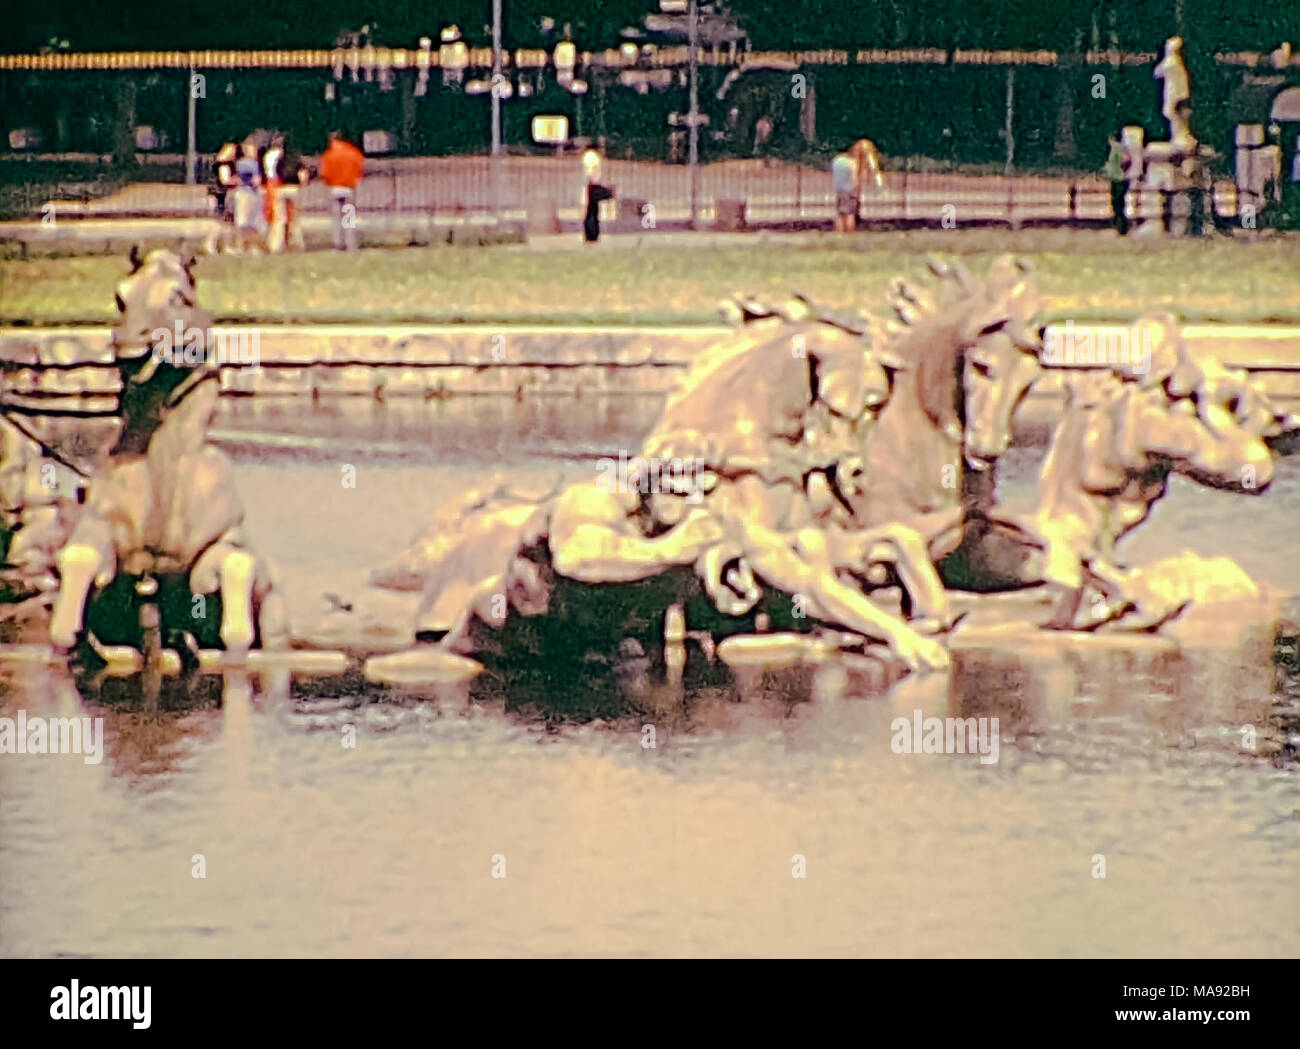 Statues of the Quadriga in the Apollo fountain at Palace of Versailles garden in 1976. Historic archival footage in Paris city of France from 1970s. - Stock Image